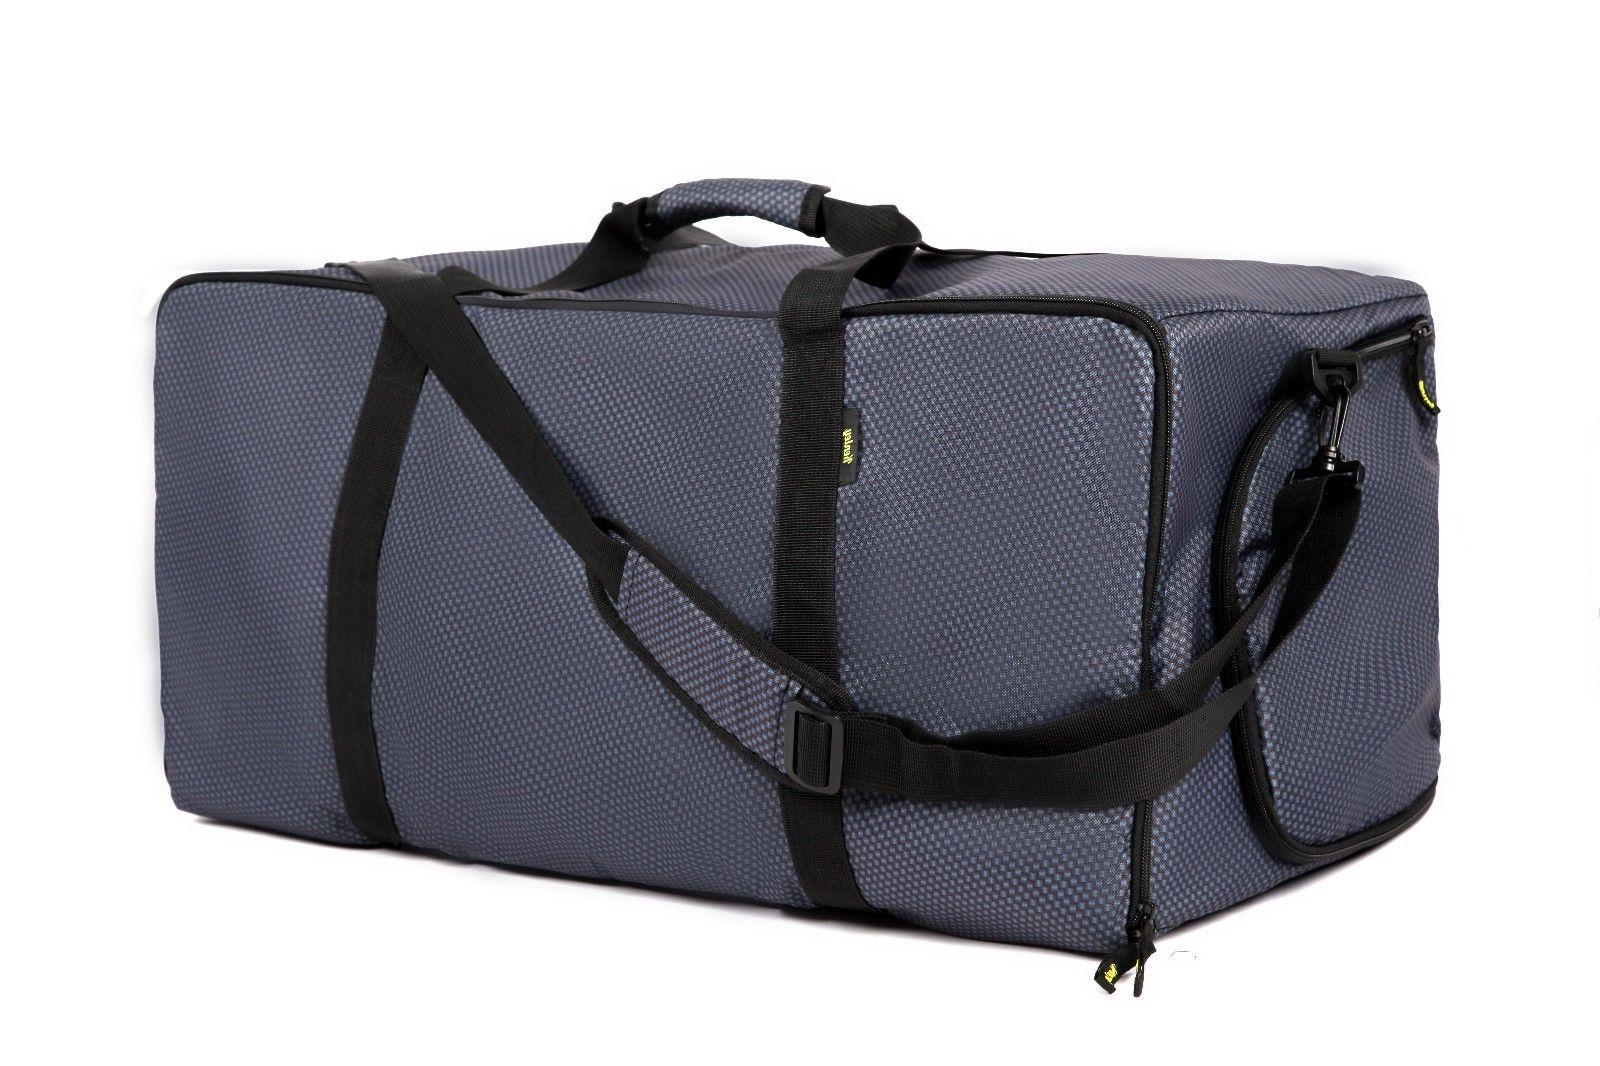 Kenley Grill Carry Bag Storage Case Cover for Smoke Hollow 2